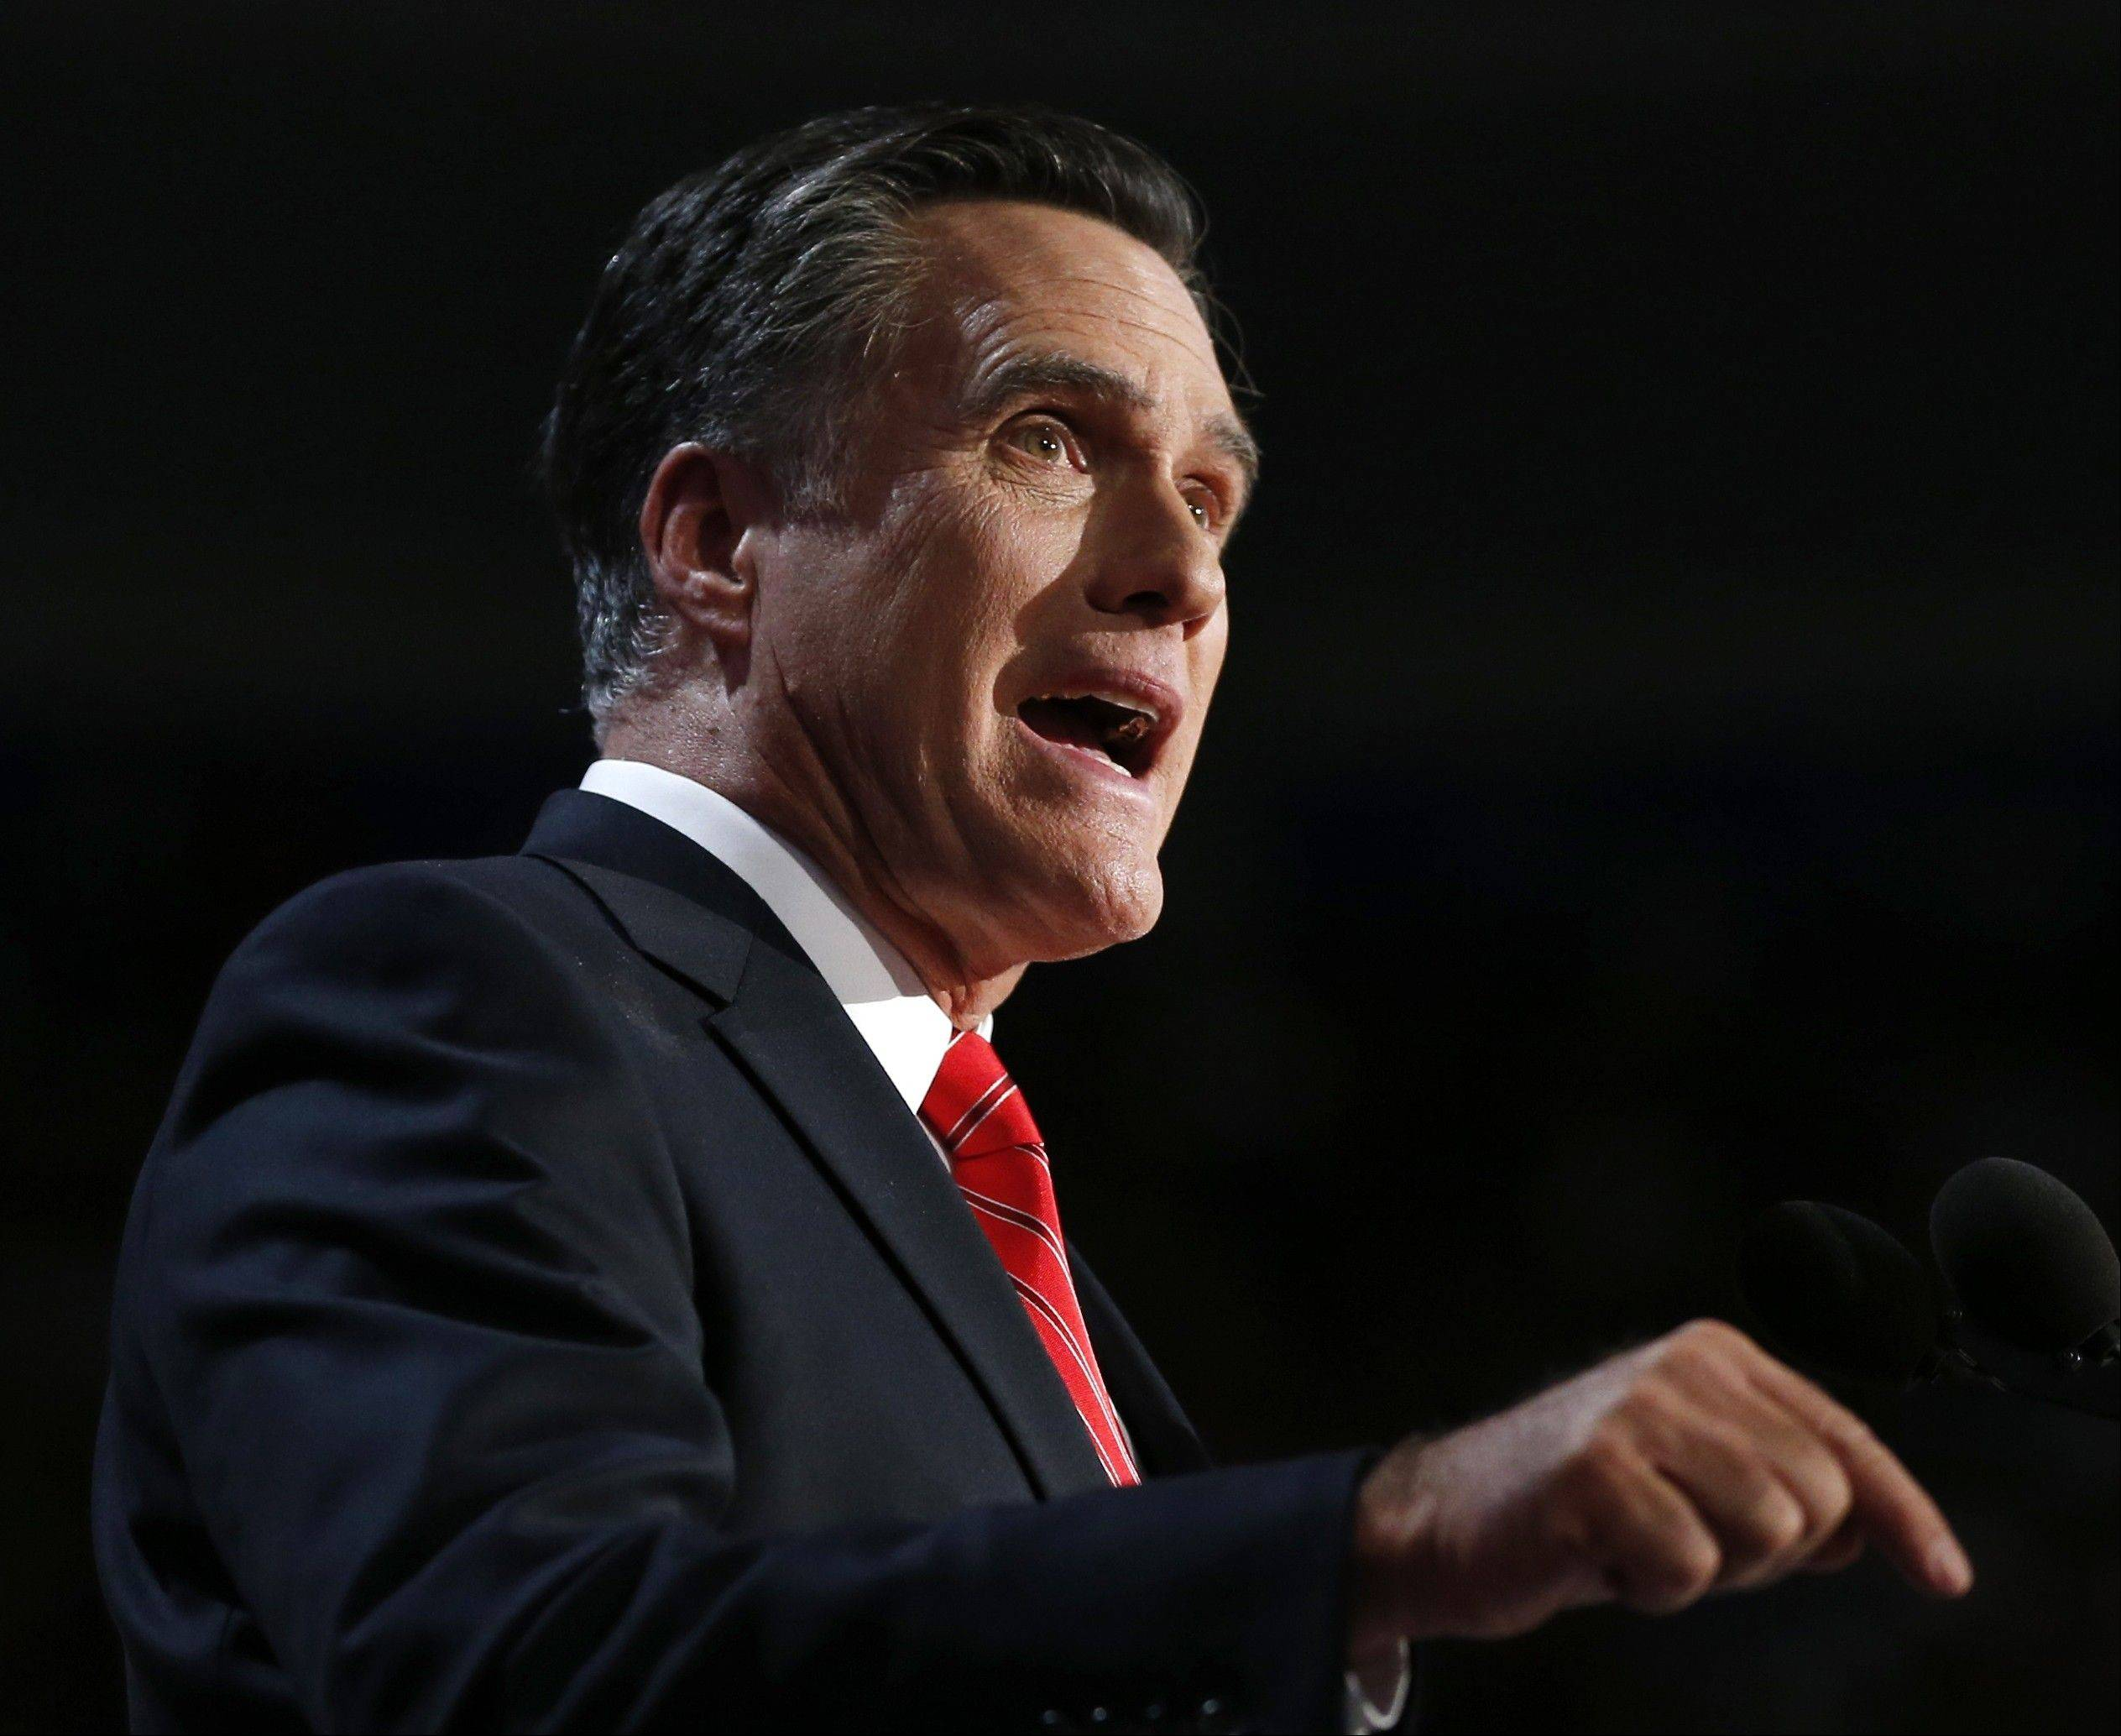 In this Aug. 30, 2012 photo, Republican presidential candidate, former Massachusetts Gov. Mitt Romney speaks at the Republican National Convention in Tampa, Fla.